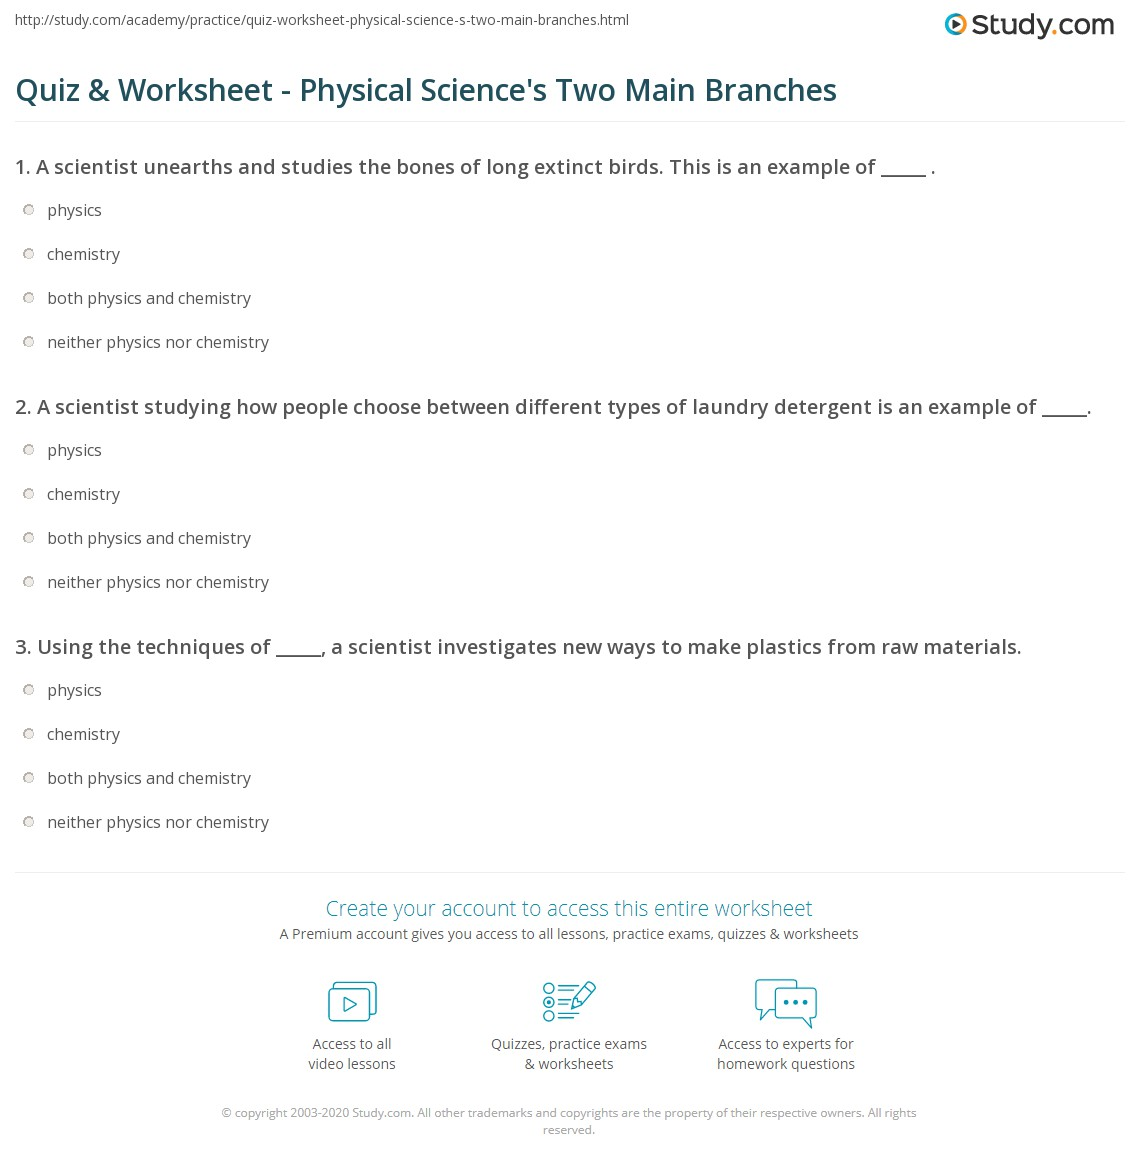 Quiz Worksheet Physical Sciences Two Main Branches – Physical Science Worksheets